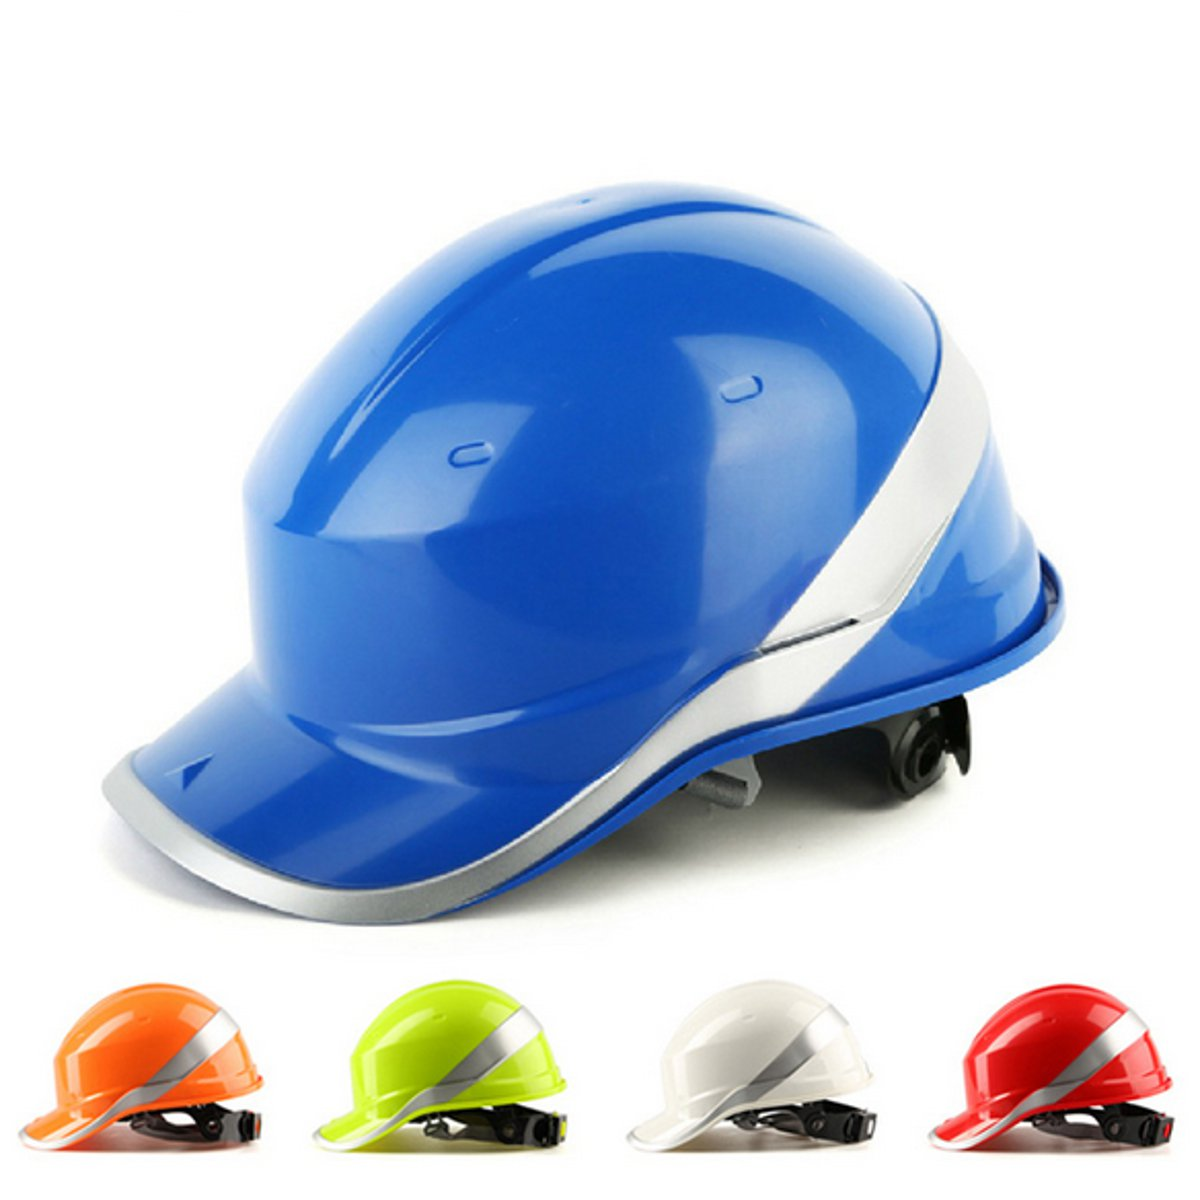 Safurance Safety Hard Hats 8 Point  Construction Work Protective Helmets  ABS Insulation Material Protect HelmetsSafurance Safety Hard Hats 8 Point  Construction Work Protective Helmets  ABS Insulation Material Protect Helmets